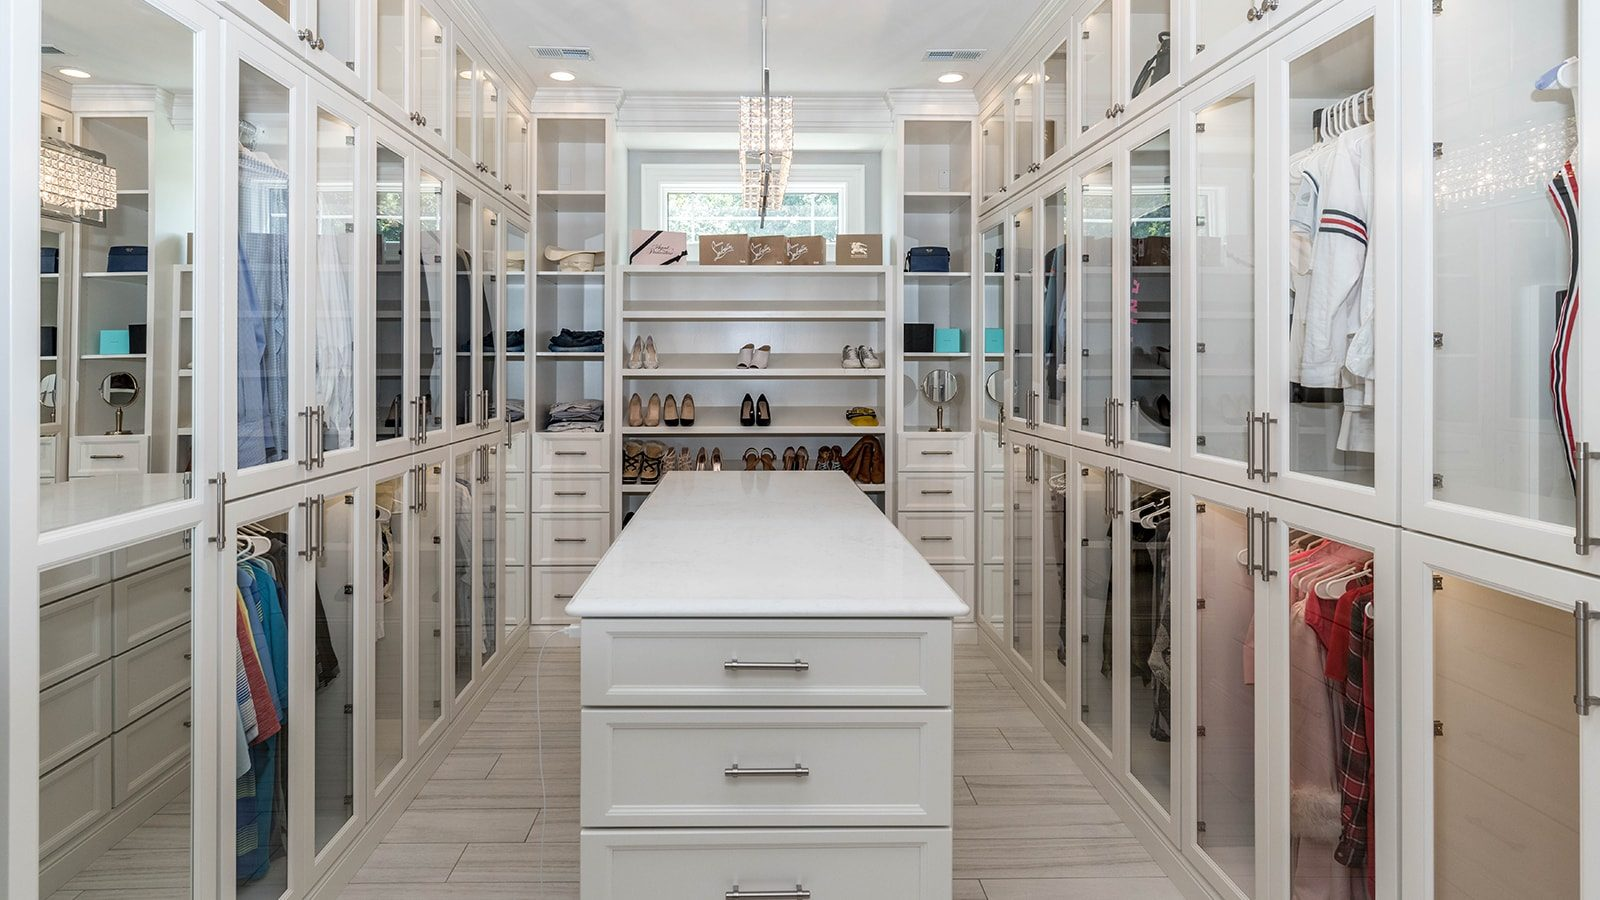 Stylish and Chic Walk-In Closet Interior Design Ideas